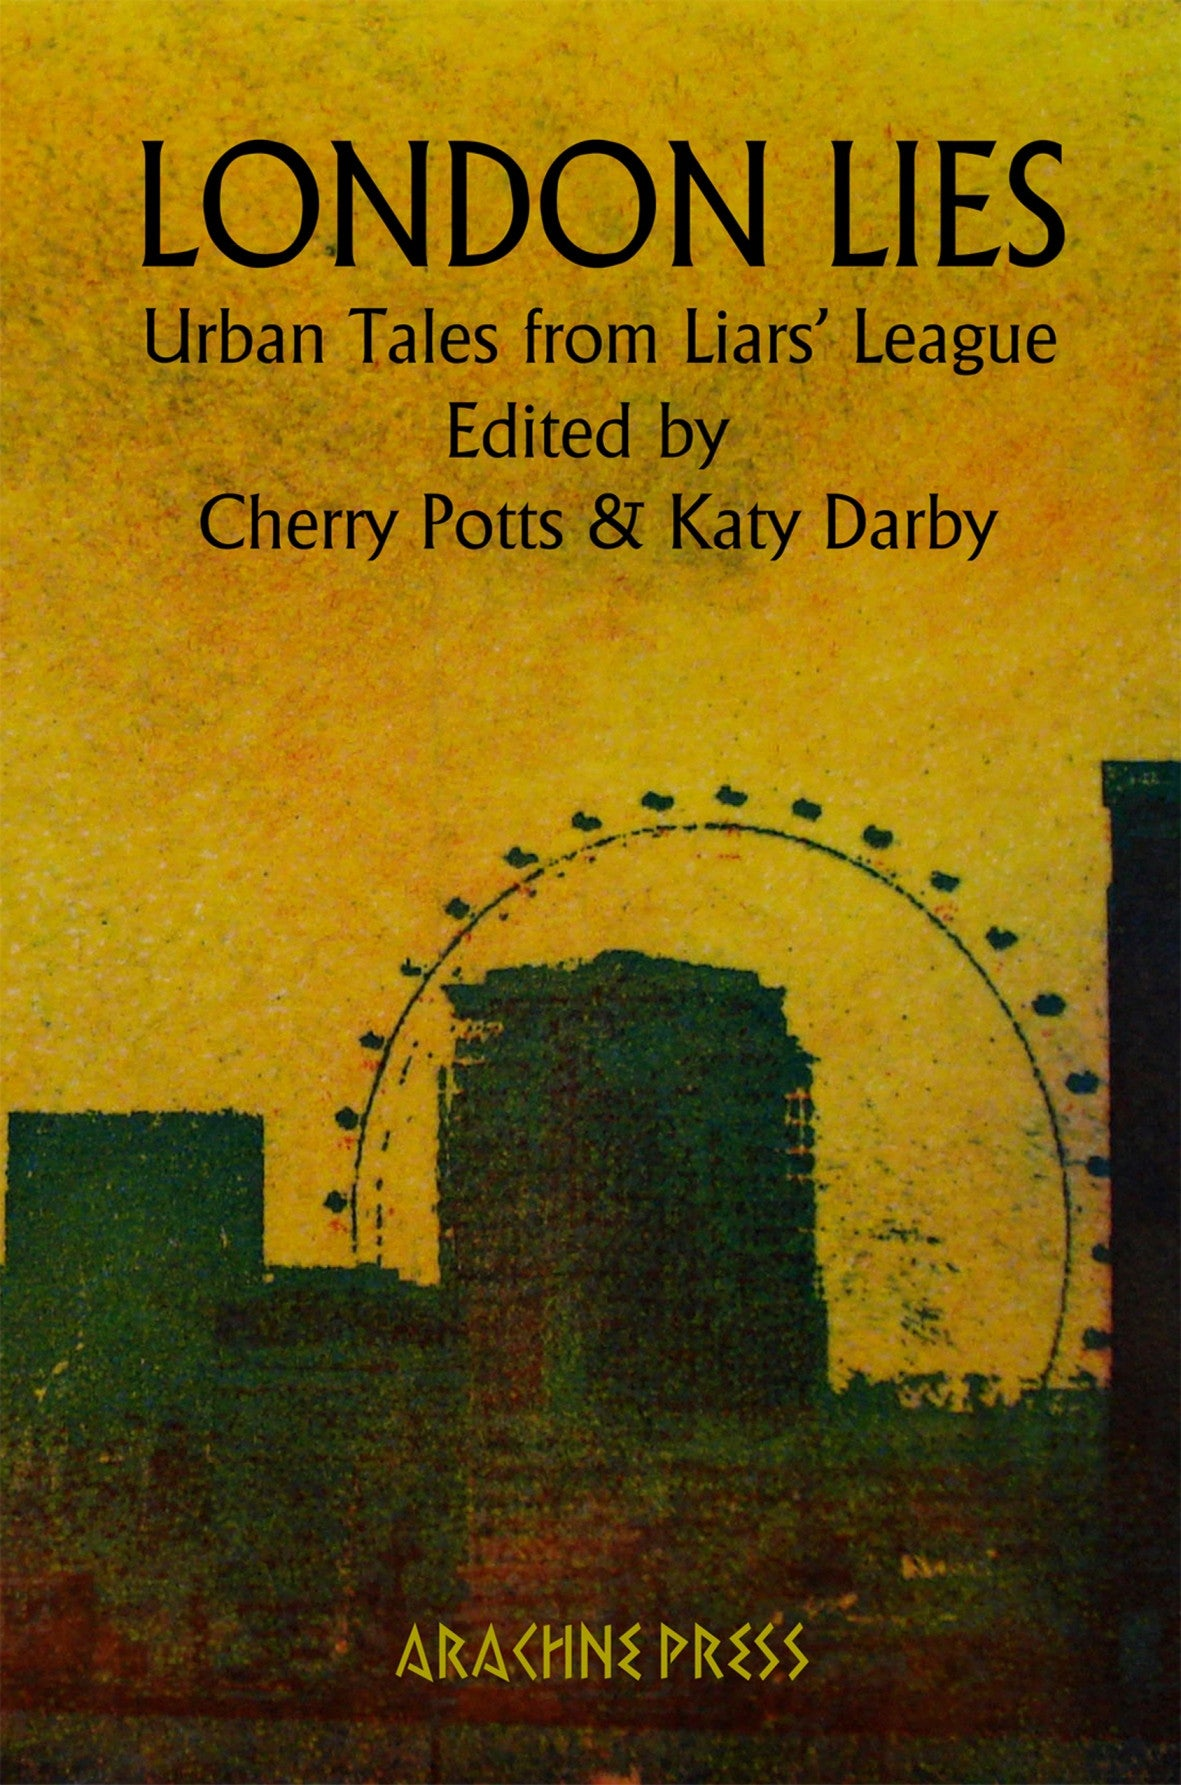 London Lies: Urban Tales from Liars' League